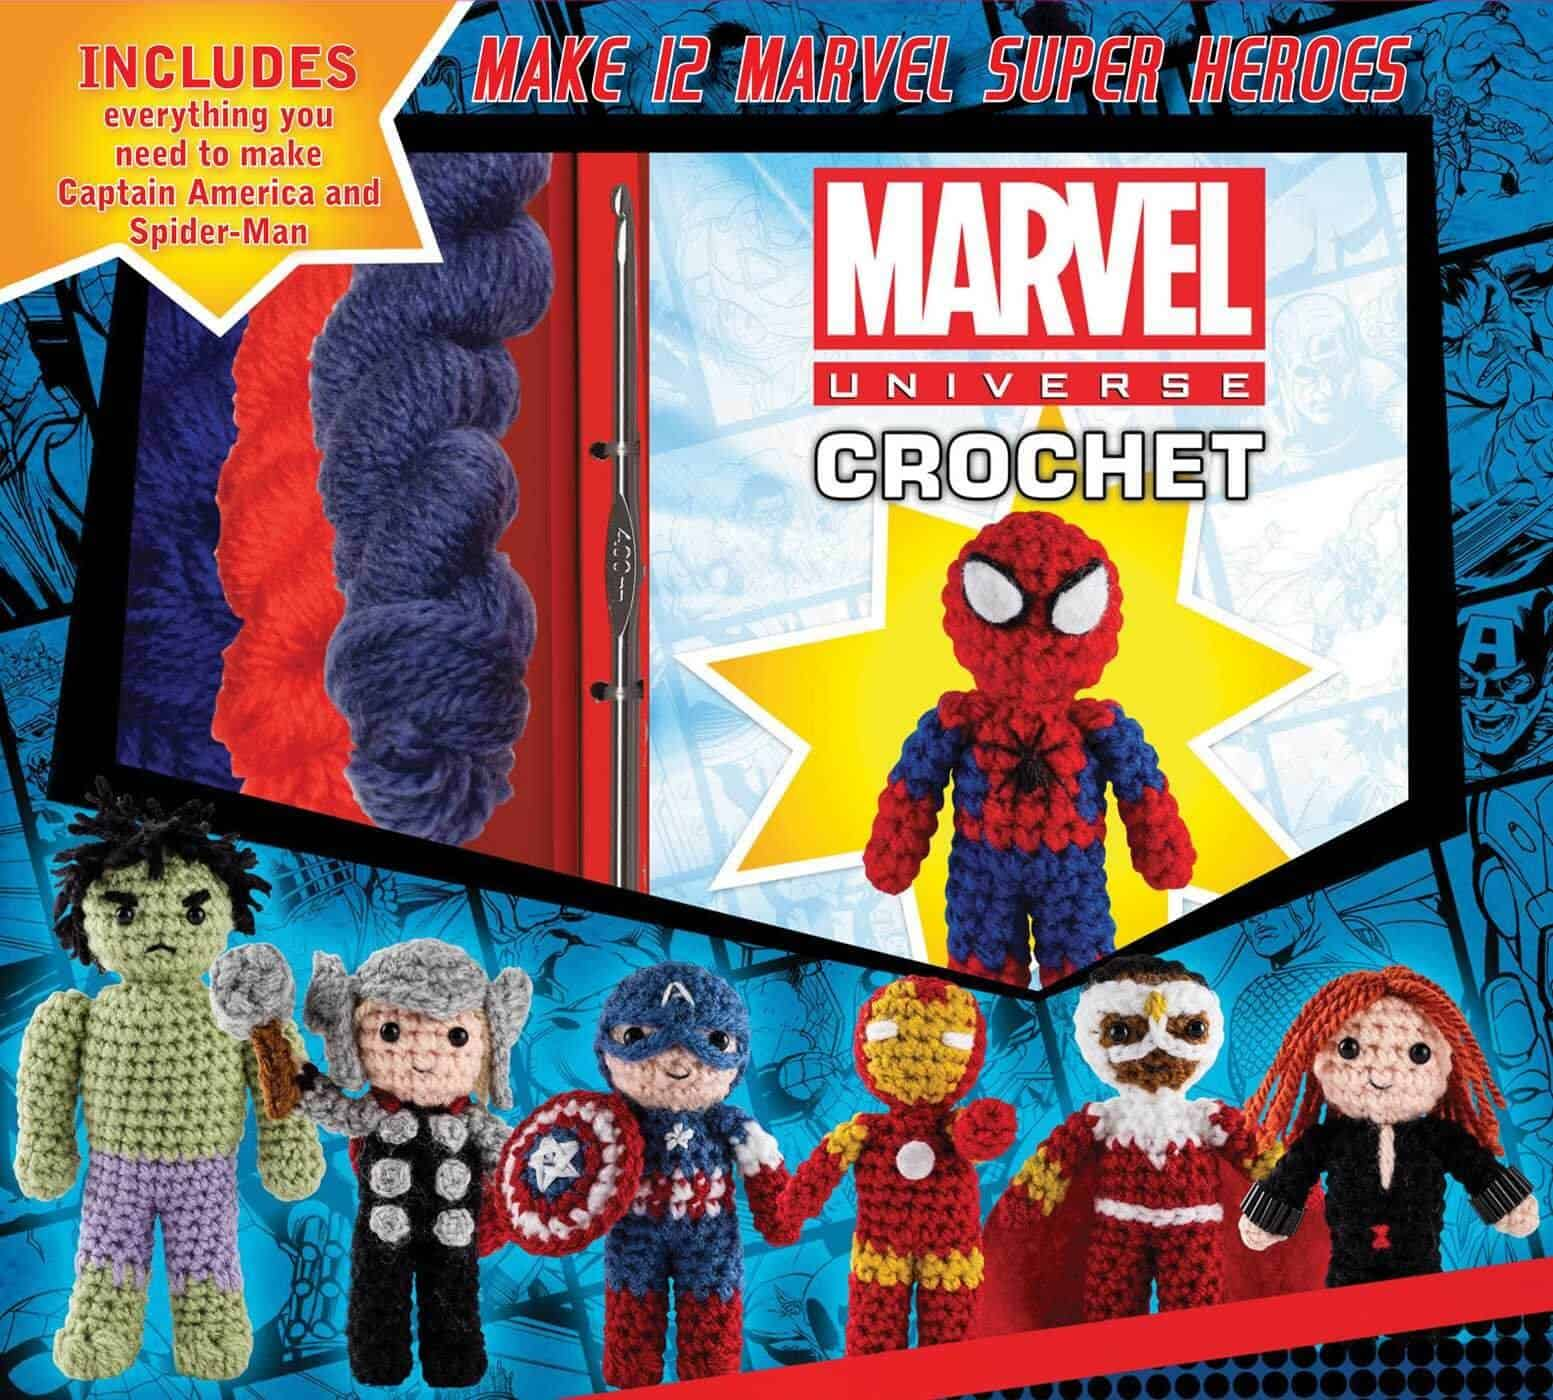 Marvel Universe Crochet Pattern Book